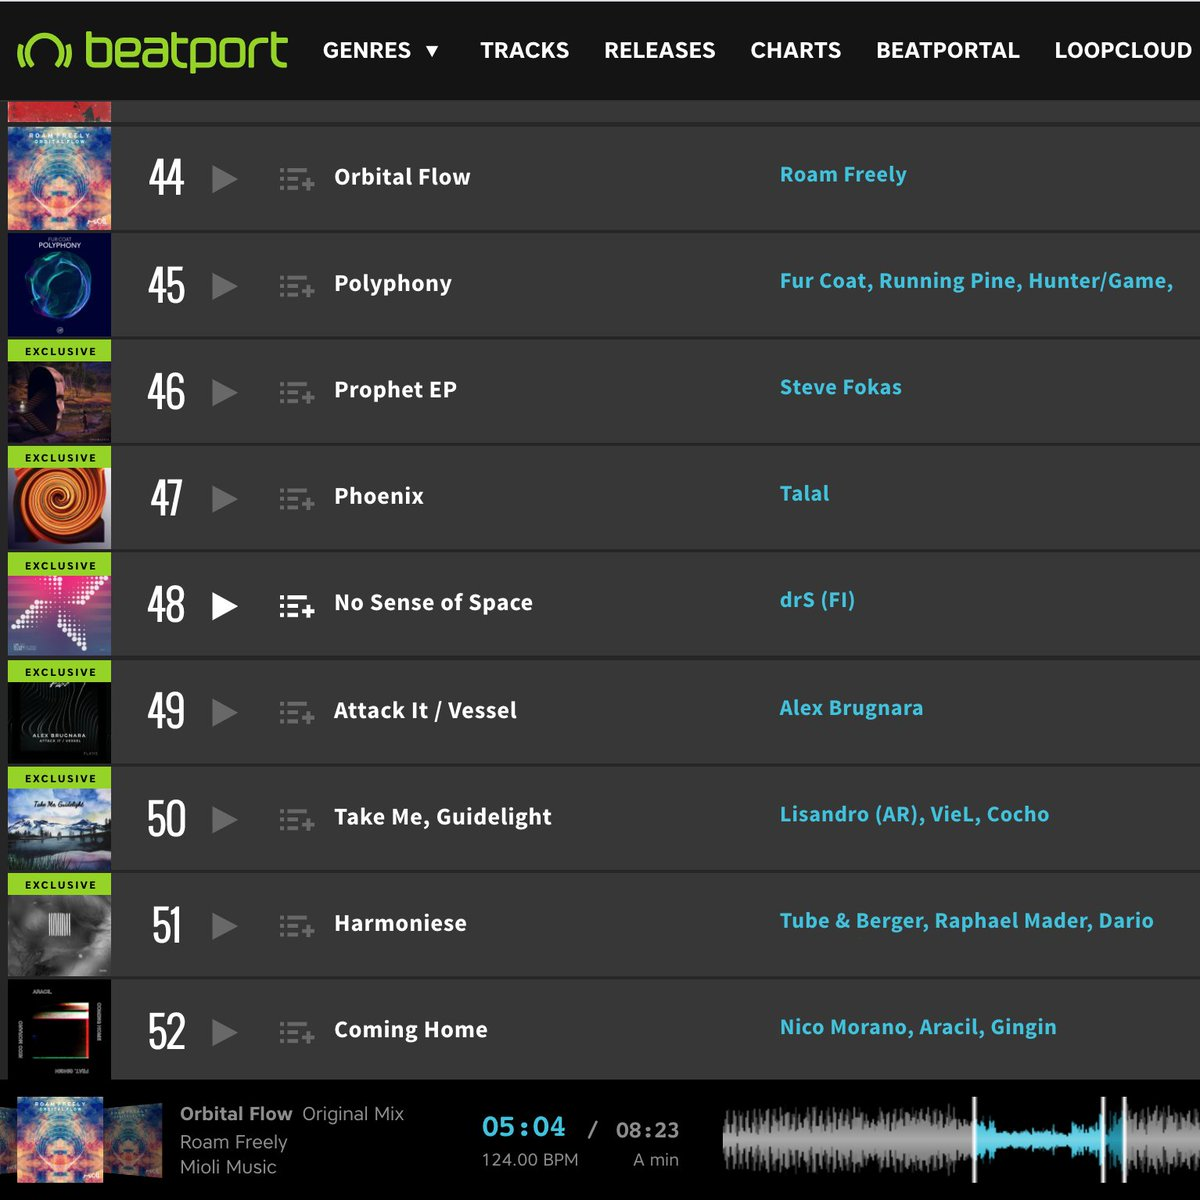 The debut album 'Orbital Flow' by Roam Freely is currently at number 44 on the Beatport Top 100 chart for Melodic Techno & House 😎 Check it out https://t.co/f2UeBGVGXy  #beatport #techno #deephouse #deeptech #techno #deephouse #melodictechno #melodichouse https://t.co/0Uv3BFM076